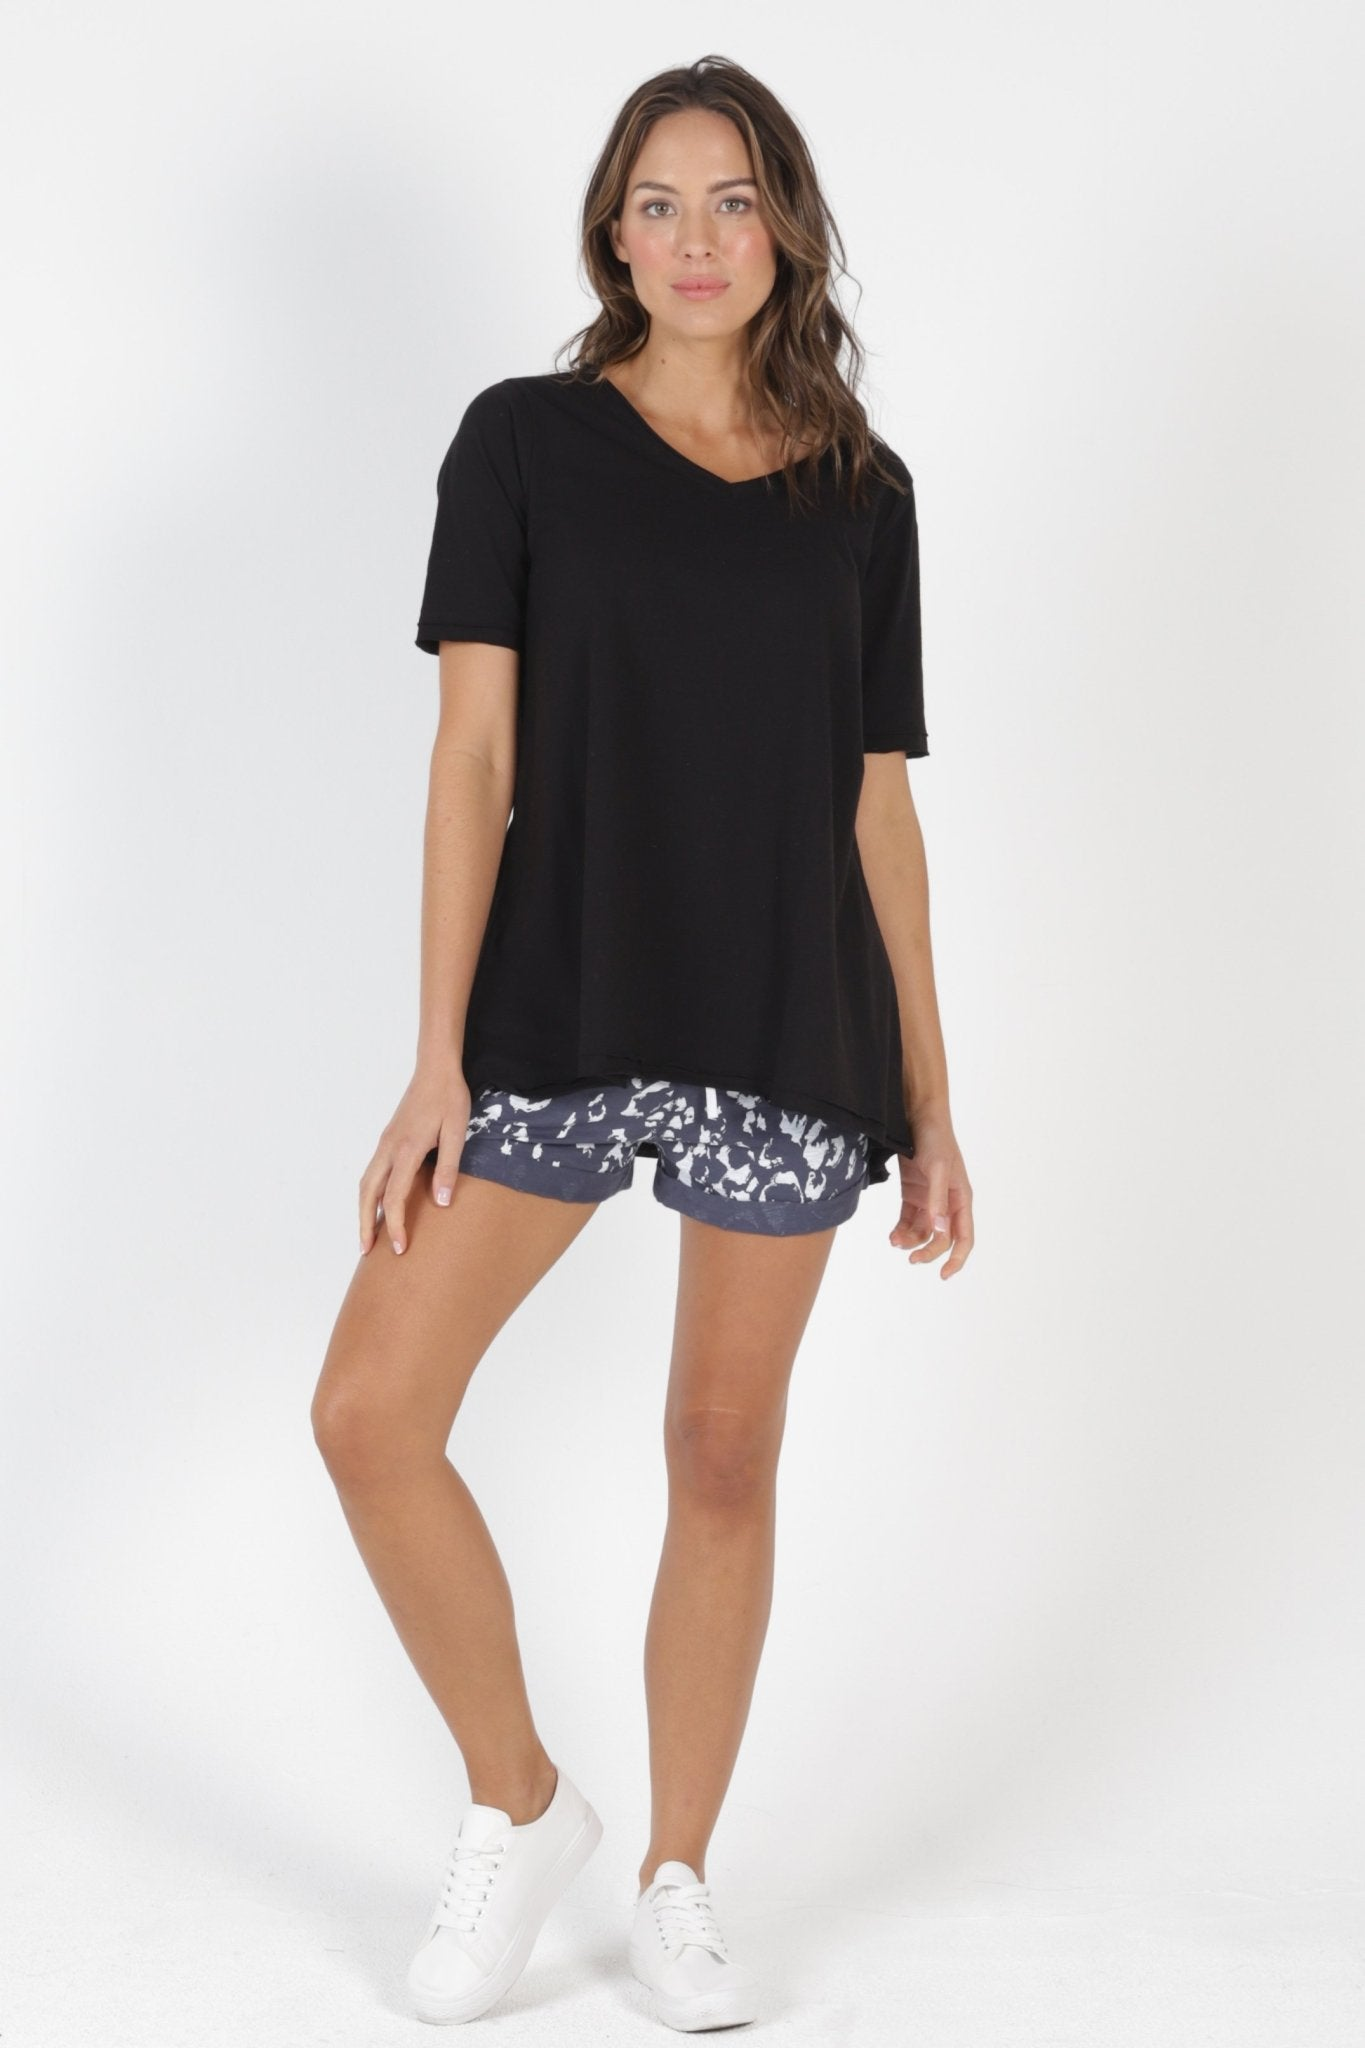 Betty Basics Noosa V-Neck Tee in Black - Hey Sara